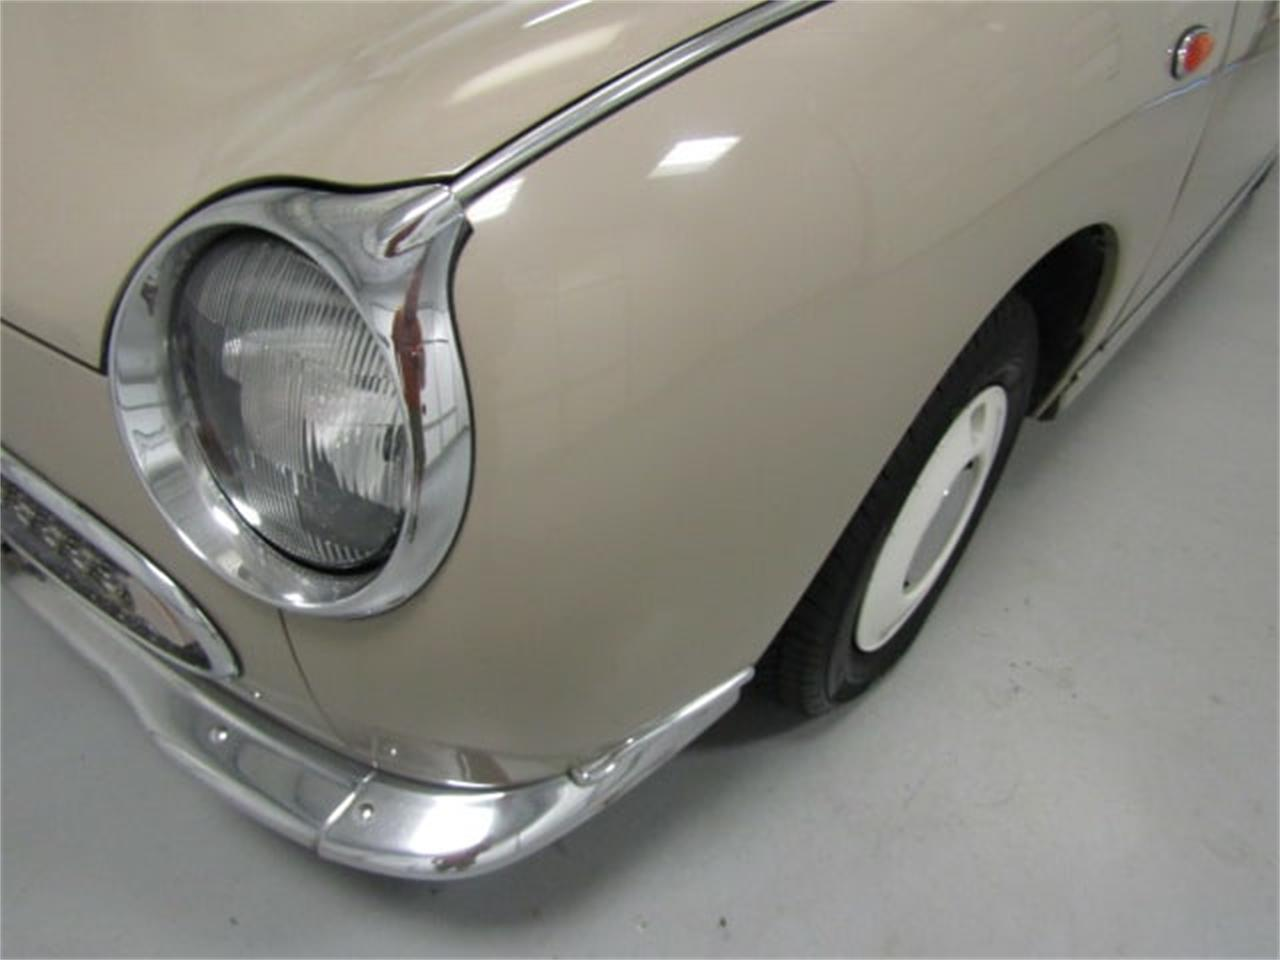 Large Picture of '91 Nissan Figaro - $10,900.00 Offered by Duncan Imports & Classic Cars - JL79